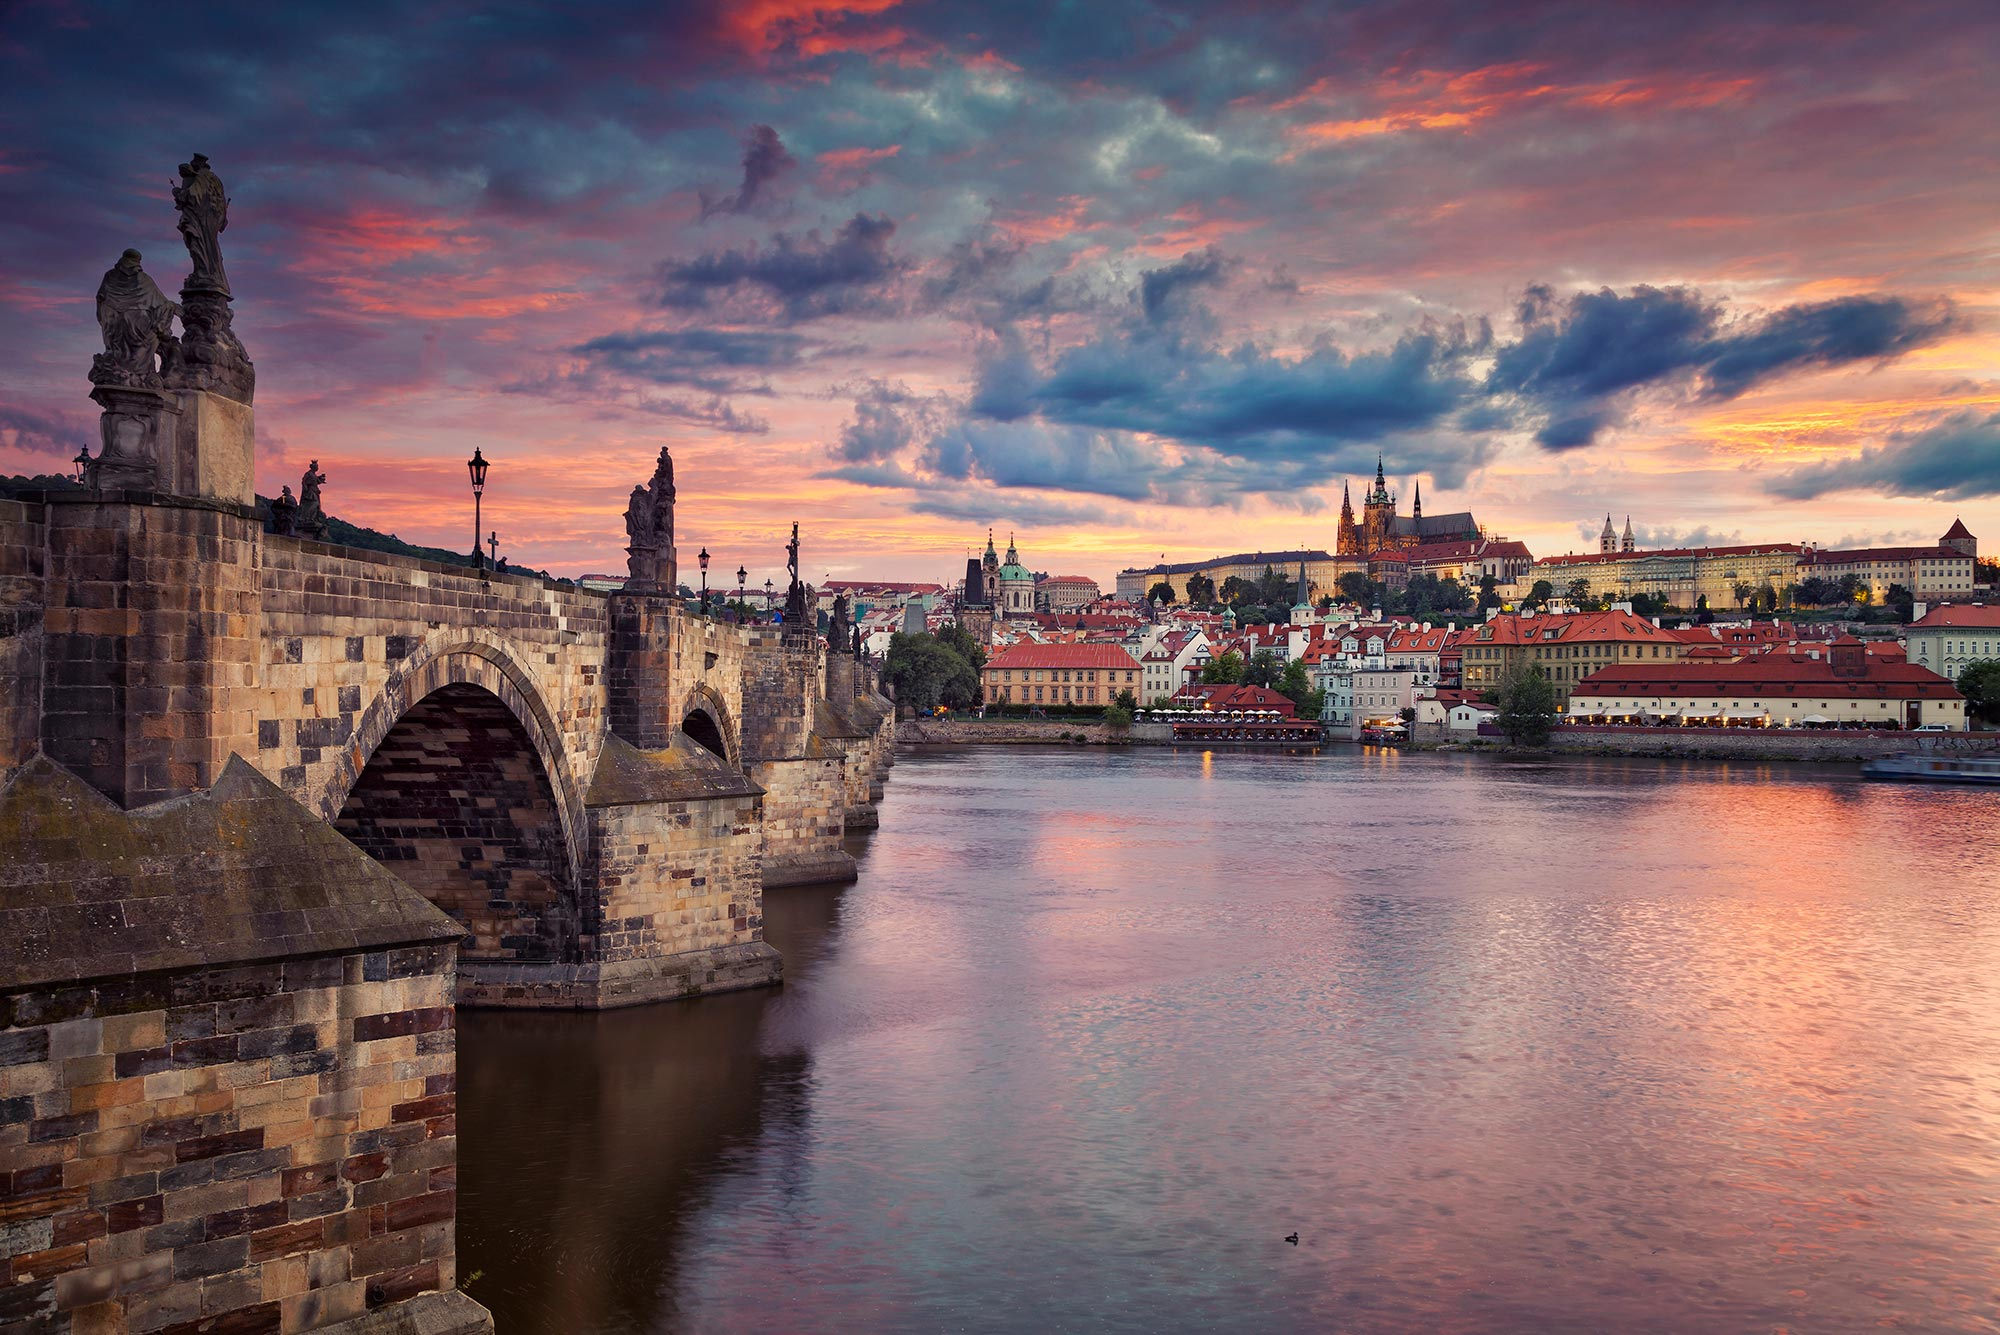 Sunset in the historic town of Prague, Czech Republic.